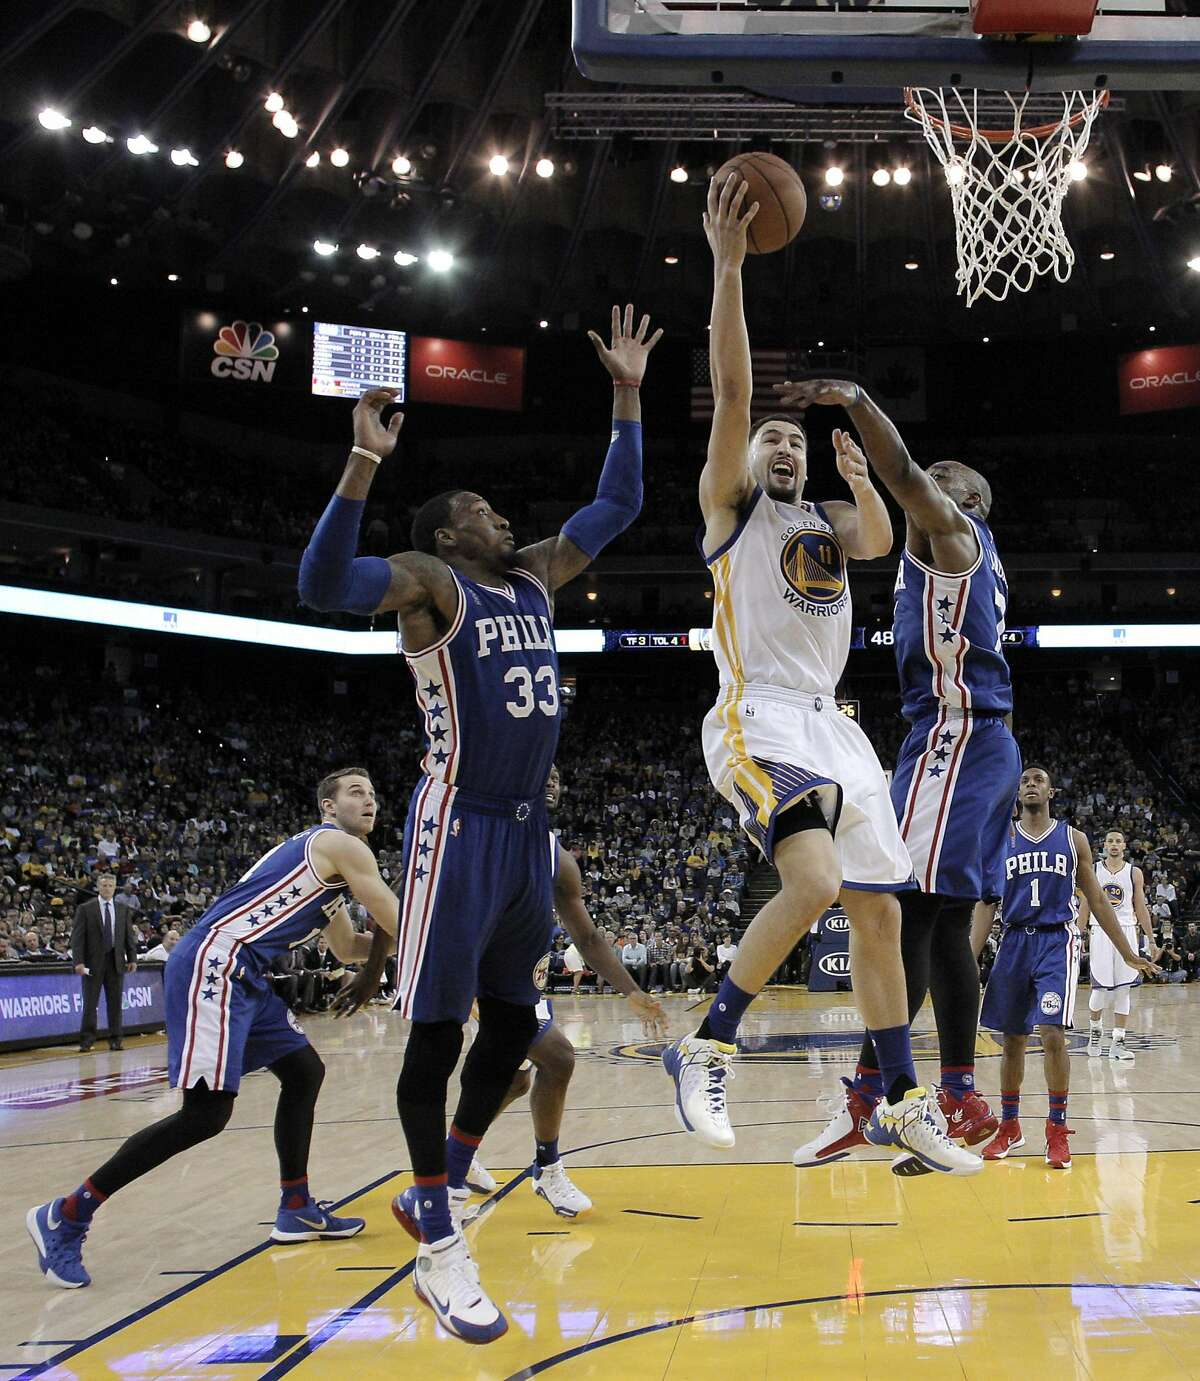 Klay Thompson (11) splits the defenders going in for a layup in the first half as the Golden State Warriors played the Philadelphia 76ers at Oracle Arena in Oakland, Calif., on Sunday, March 27, 2016.